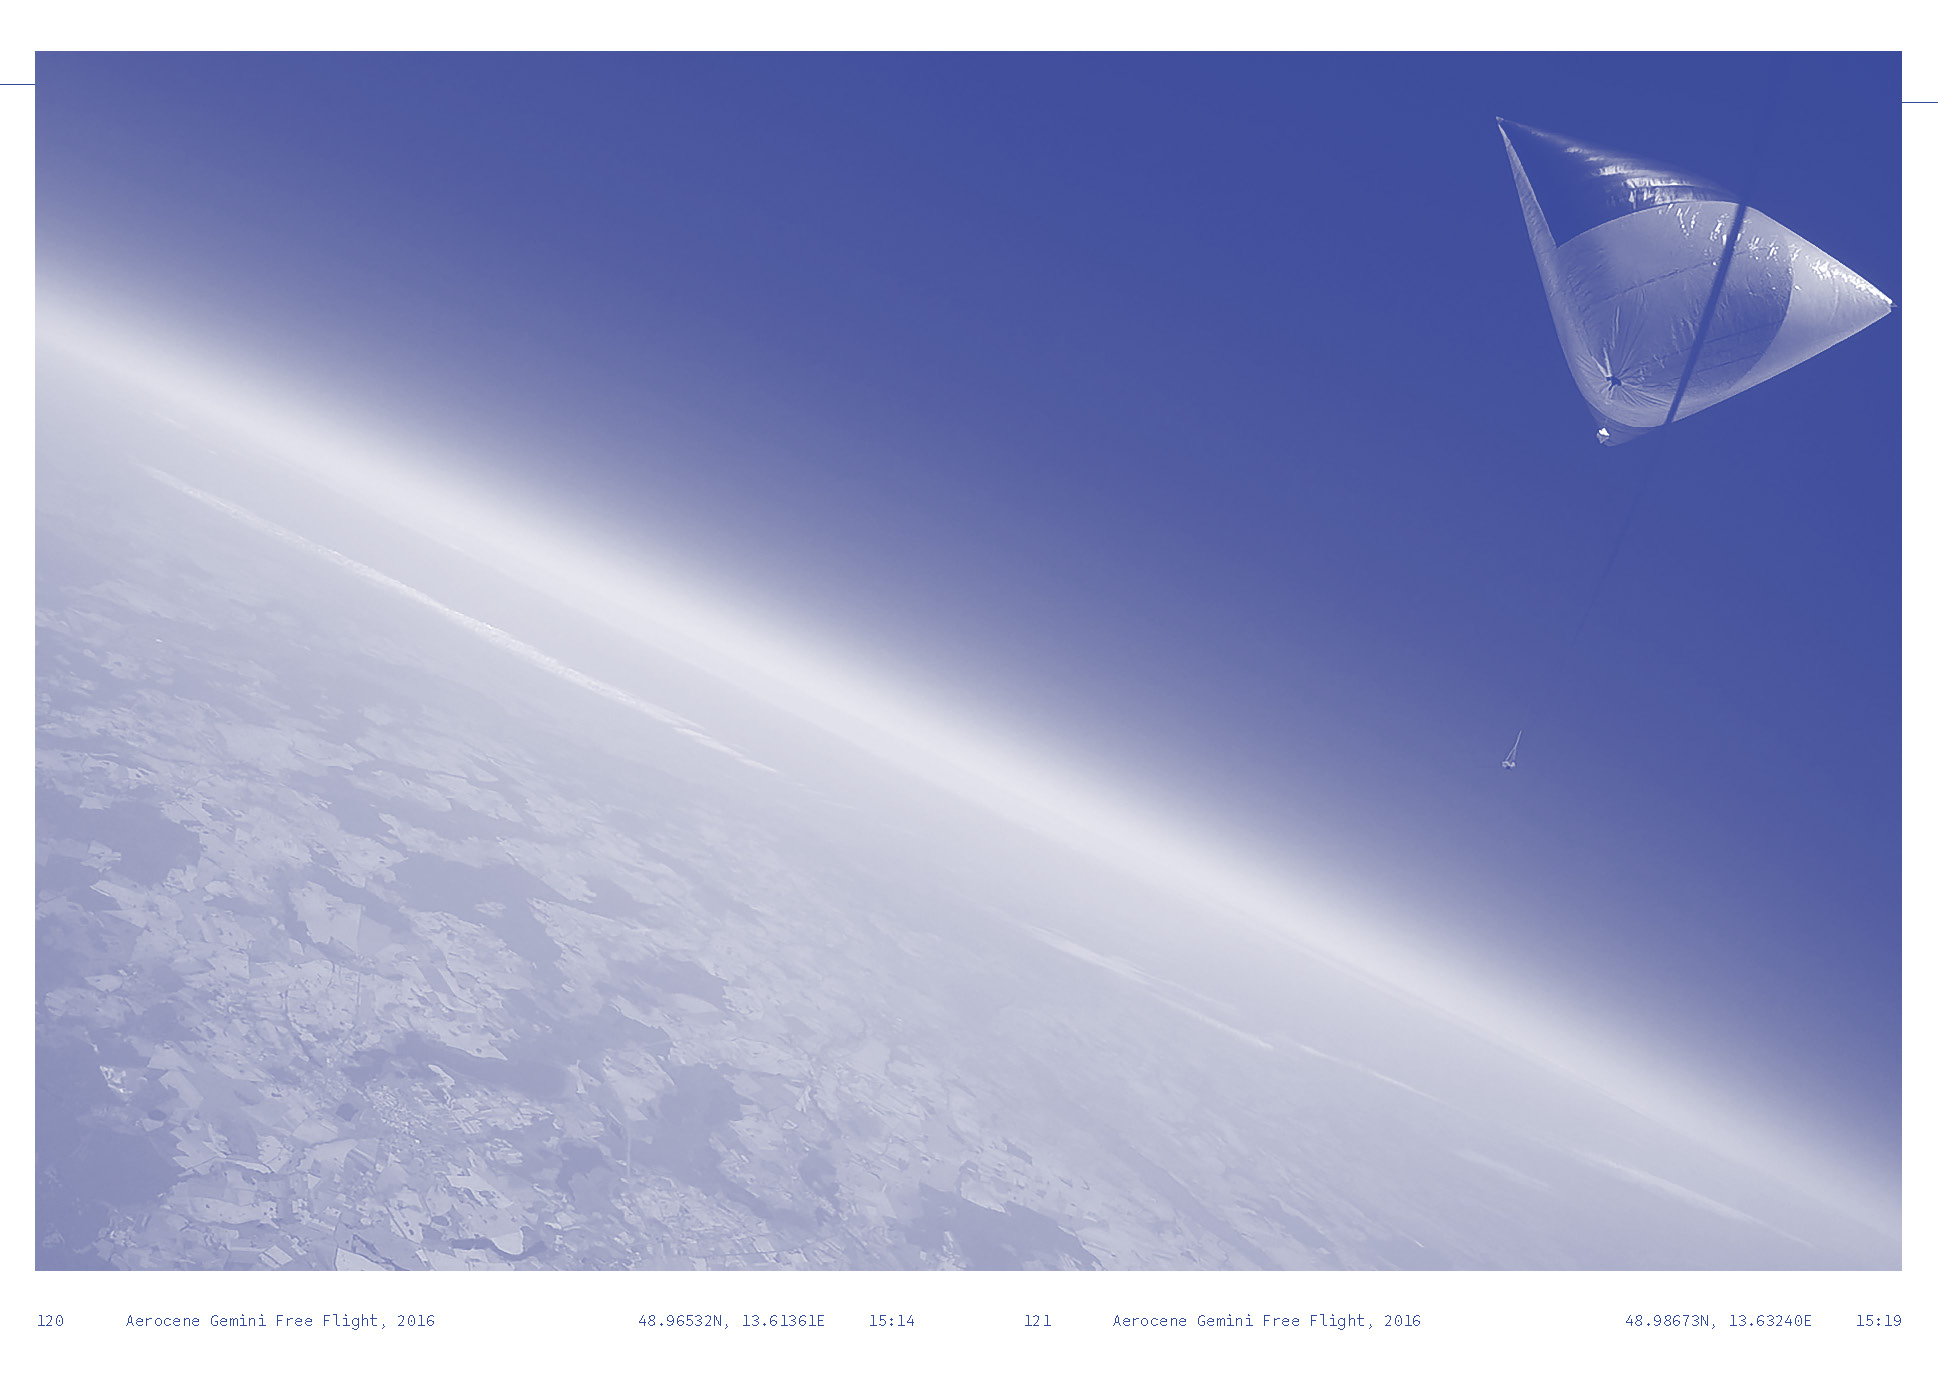 20AE_MovementsfortheAir_Aerocene (1)_Page_061